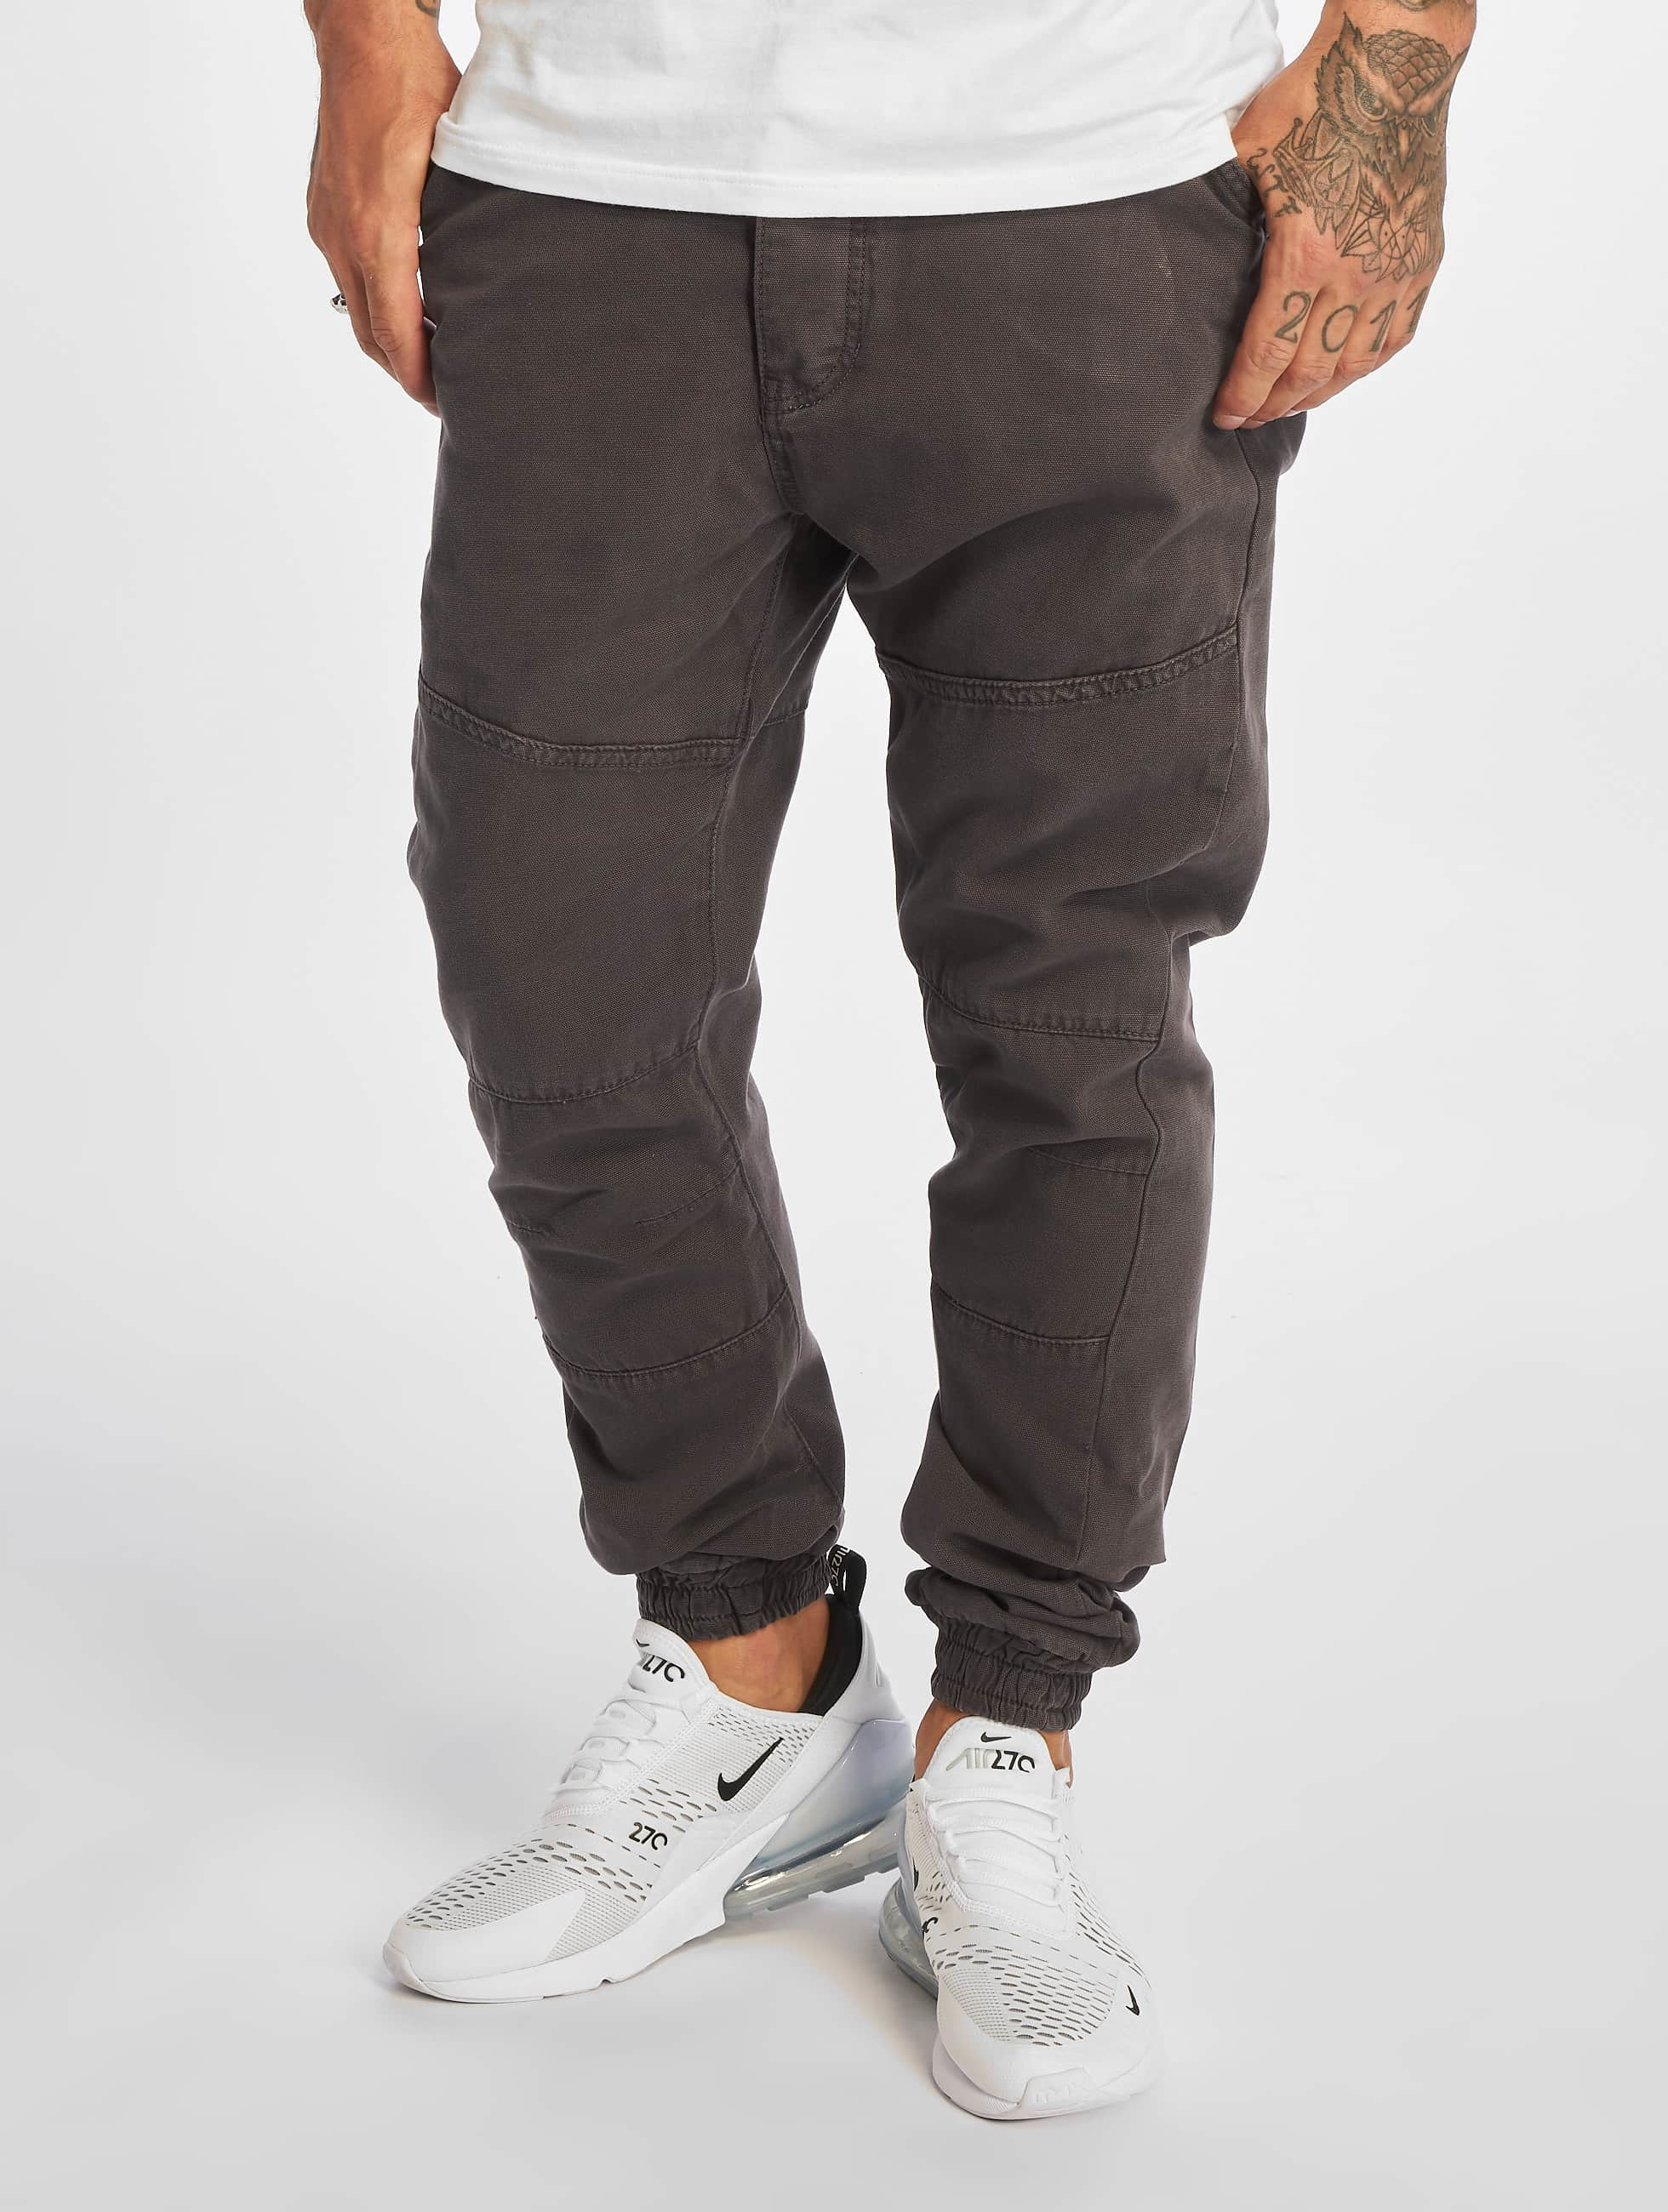 Just Rhyse / Chino Börge in grey W 30